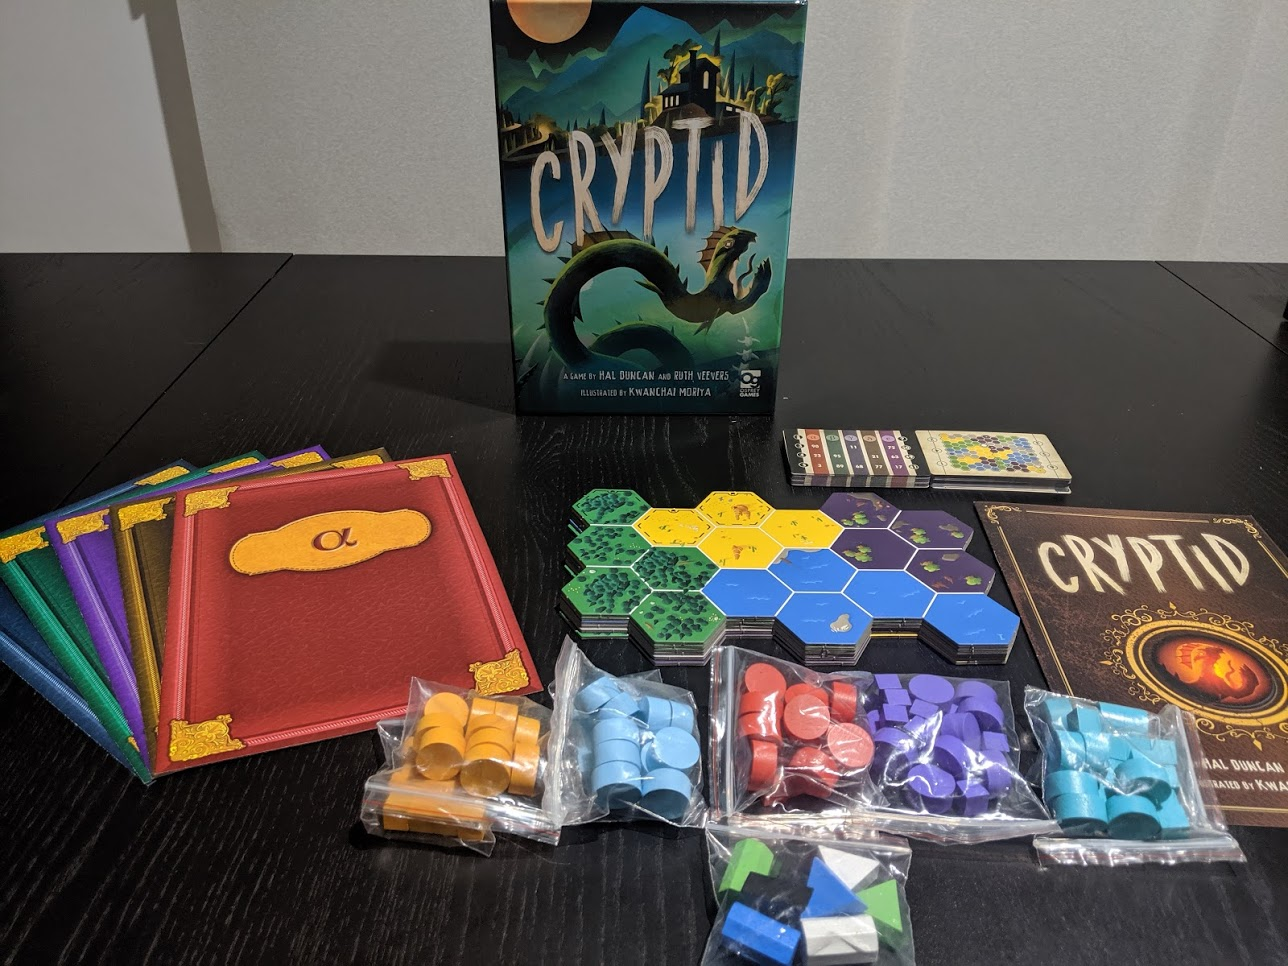 Components of Cryptid laid out on the table.